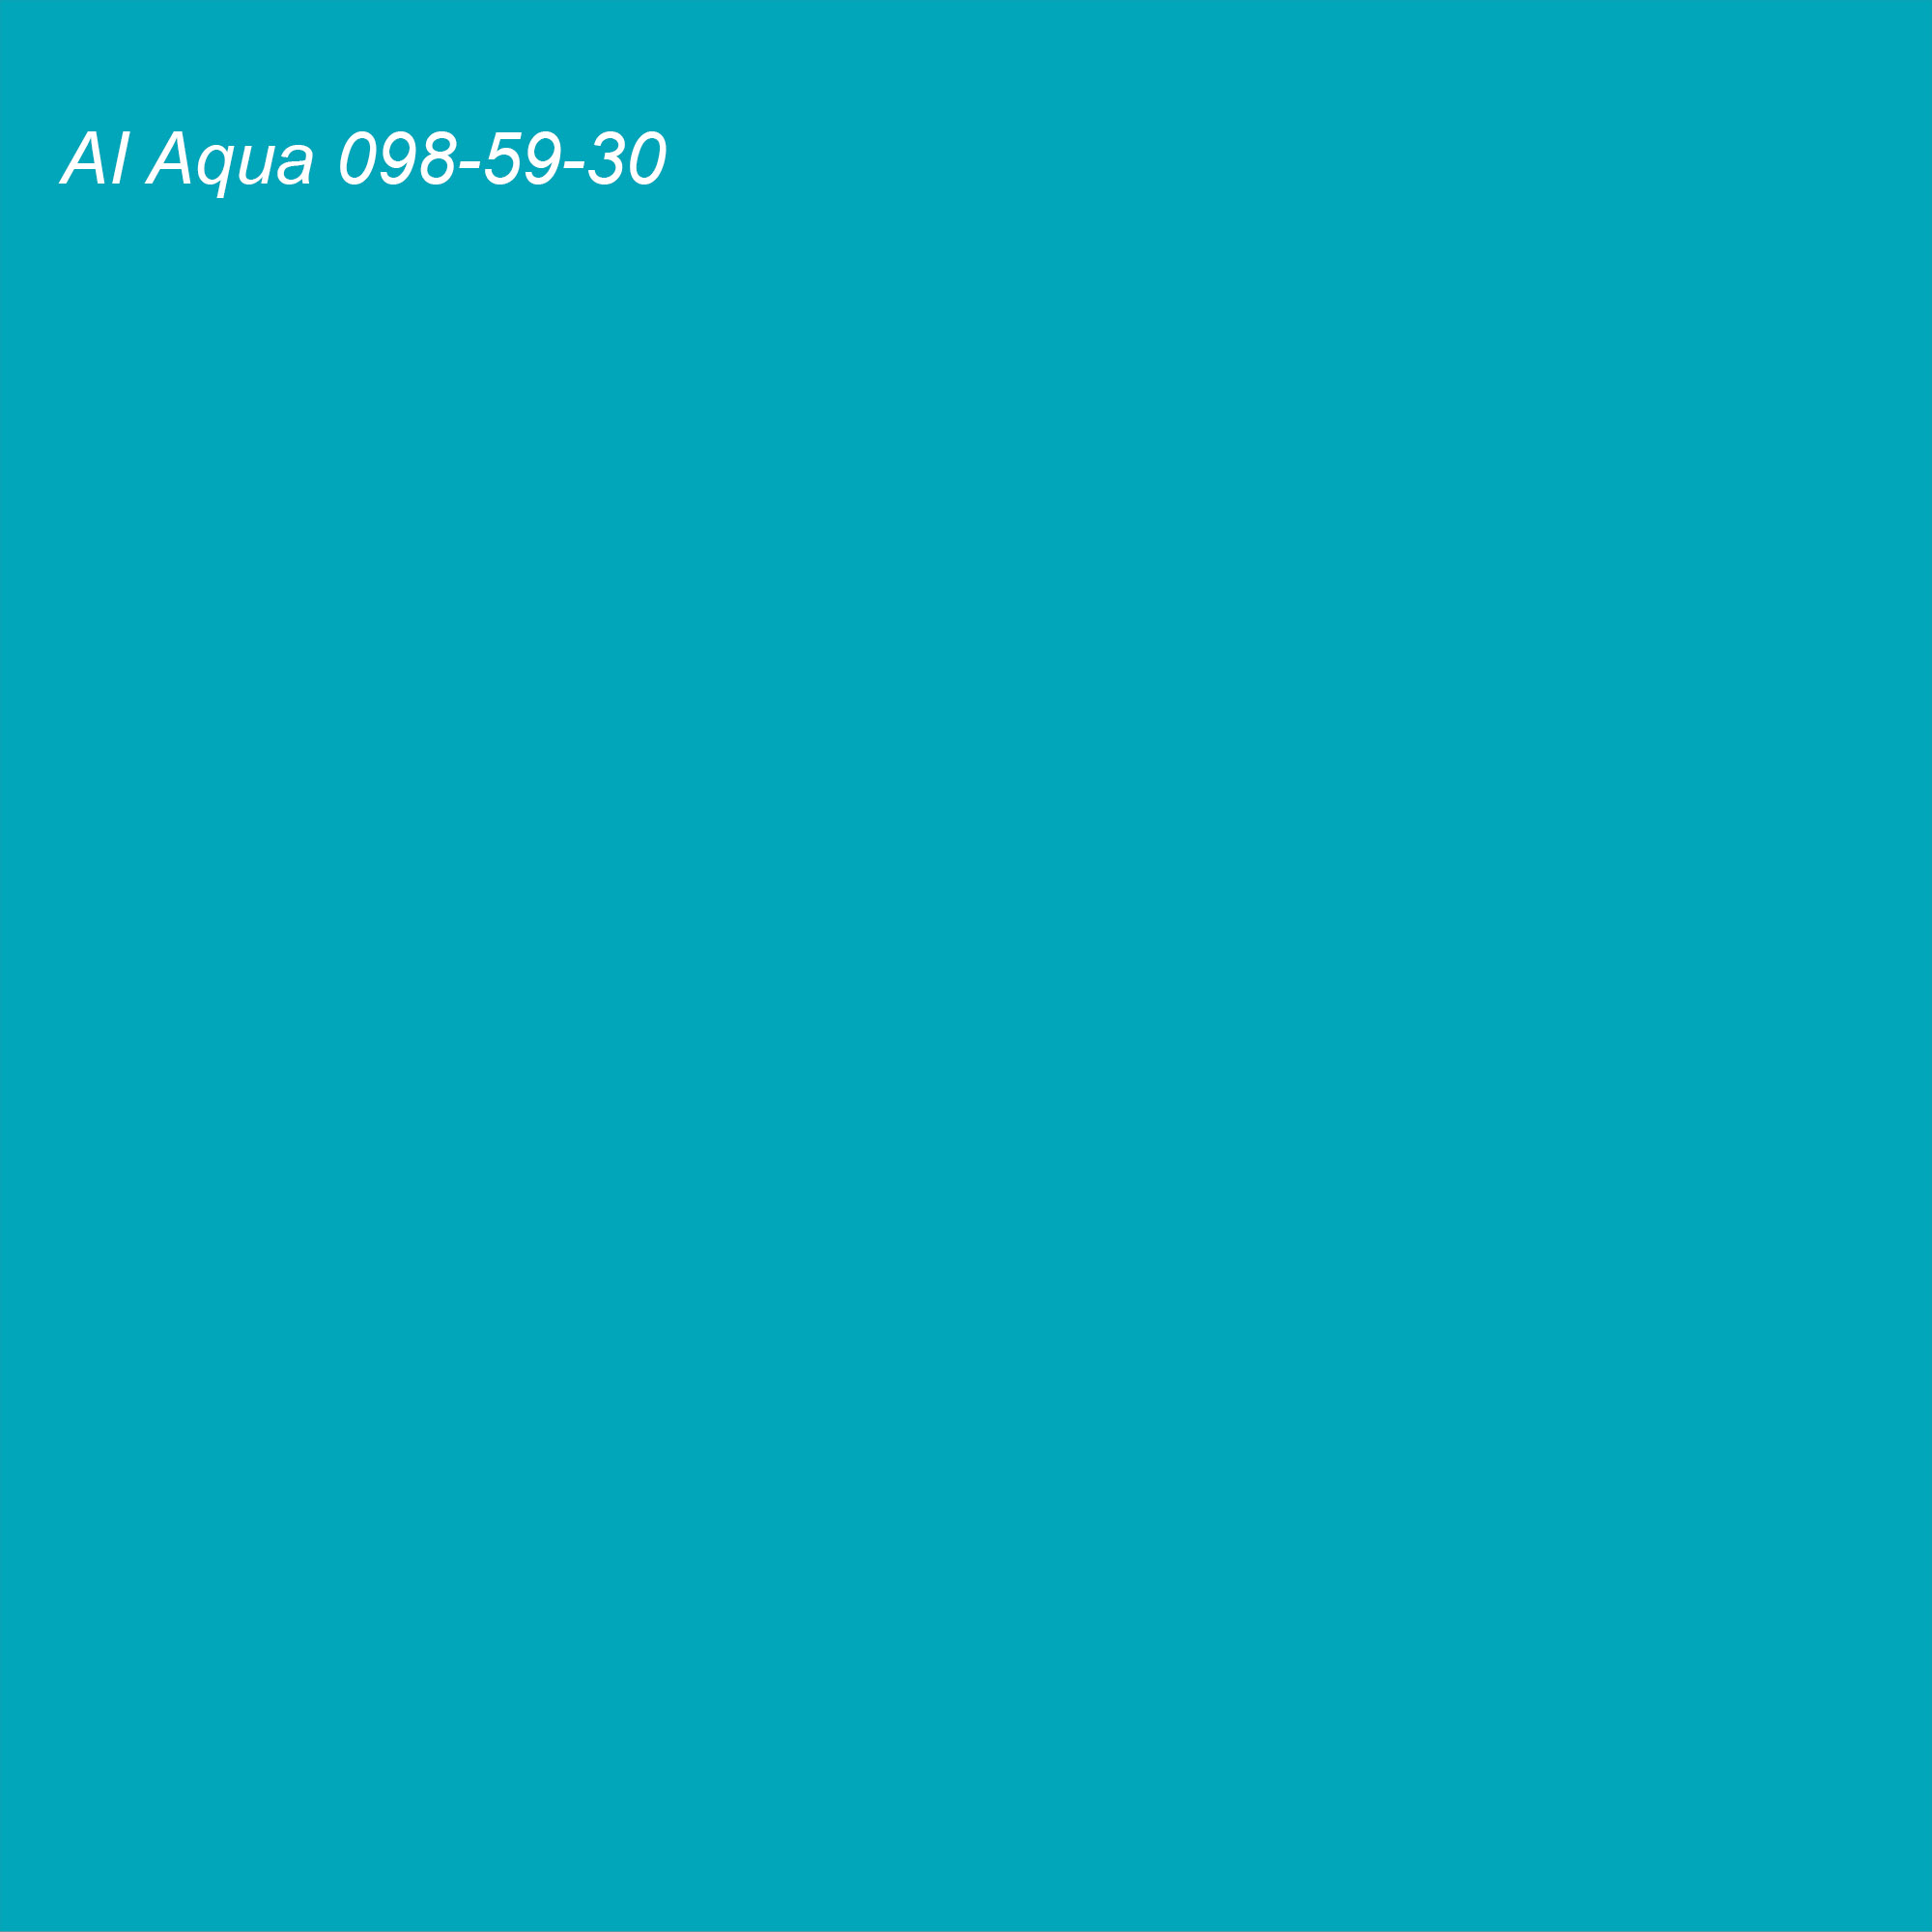 Coloro 2021 Color of the Year AI Aqua 098-59-30 (teal)